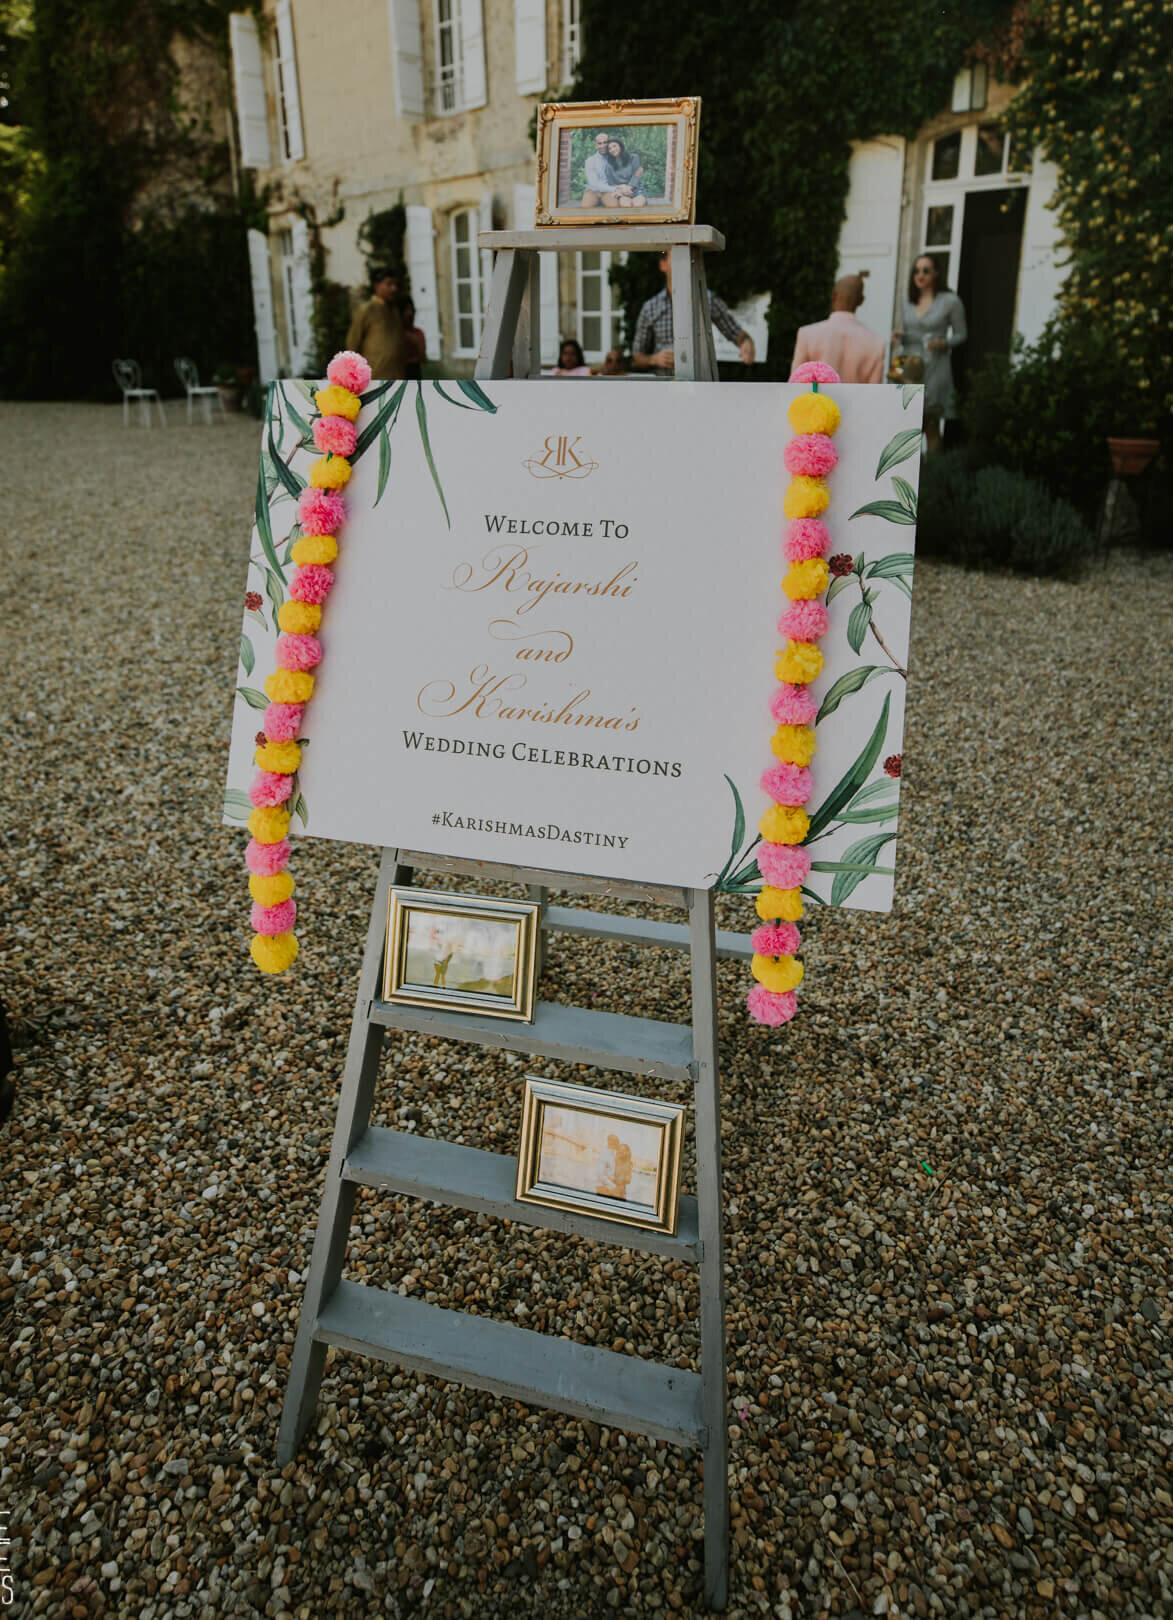 Wedding welcome sign with floral garlands